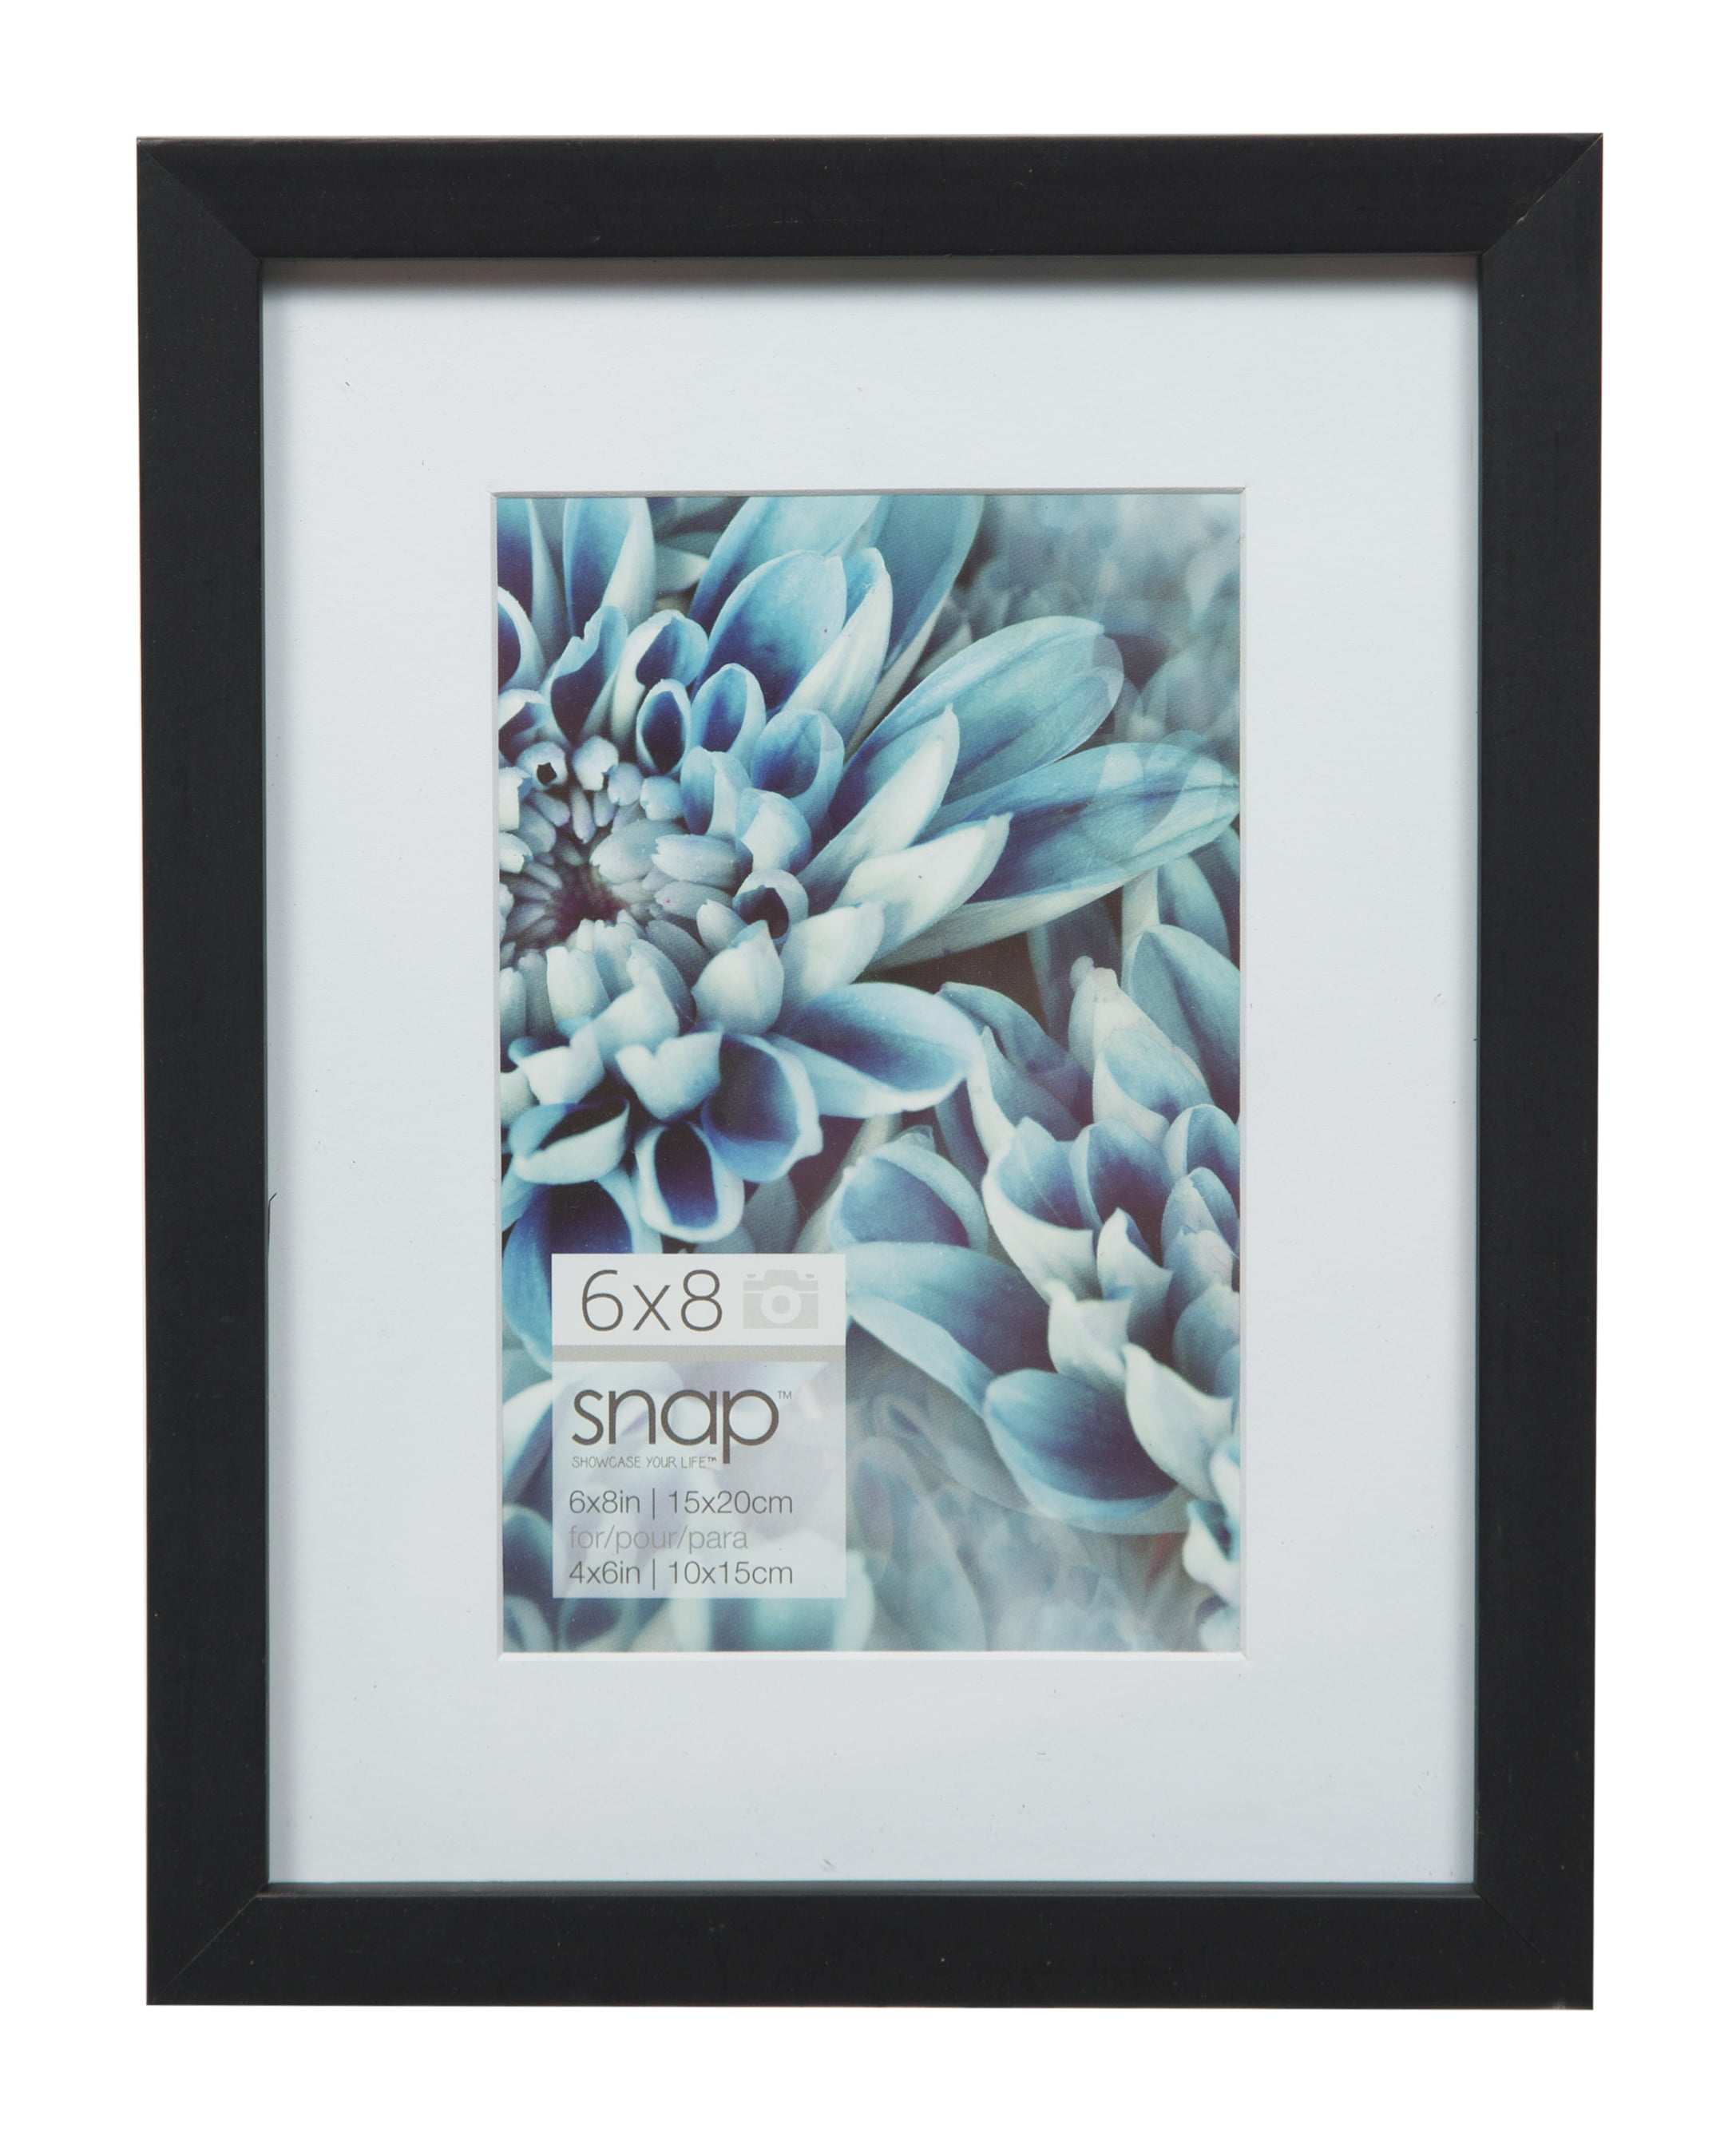 Snap 6x8 Black Wood Wall Frame Matted To 4x6 by Pinnacle Frames and Accents